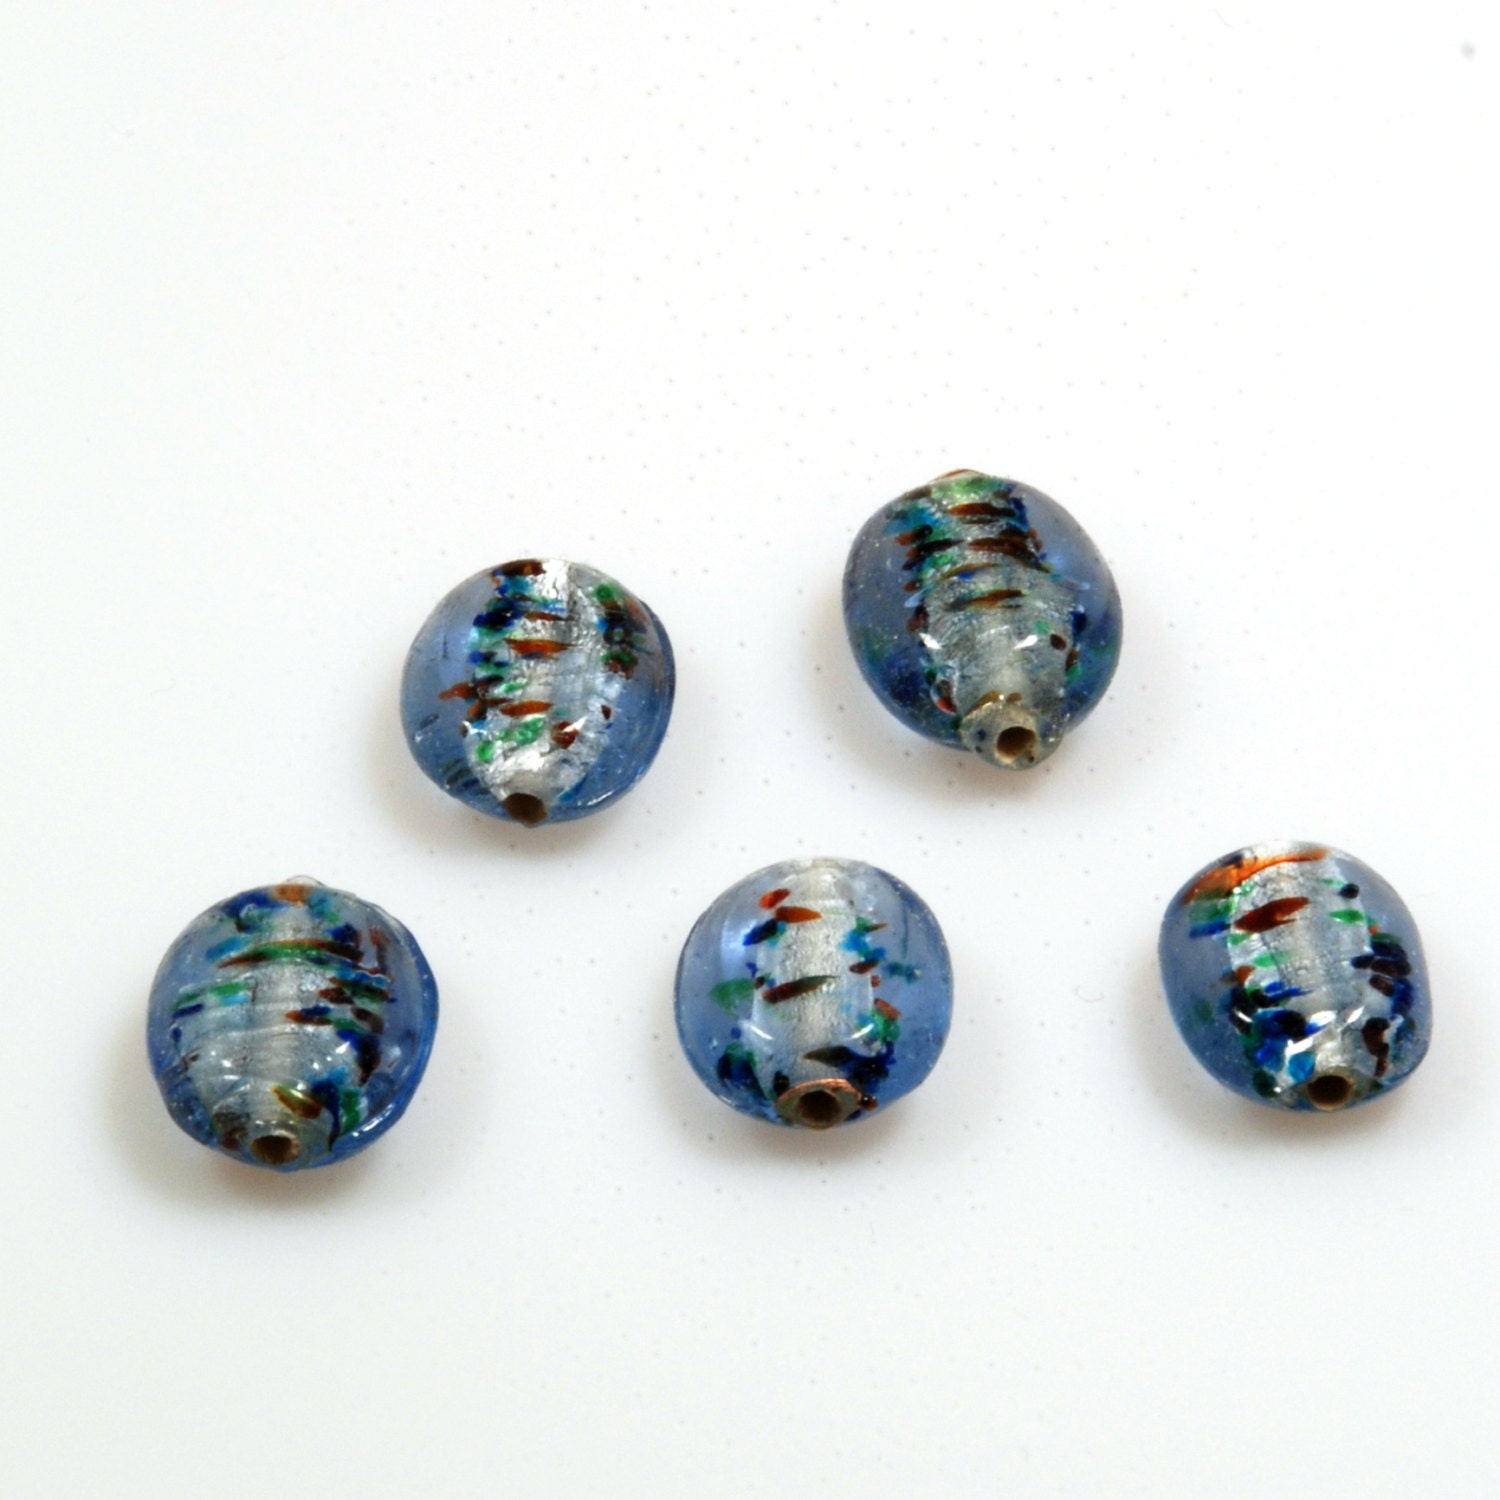 Silver foil glass beads in light blue with colored stripes